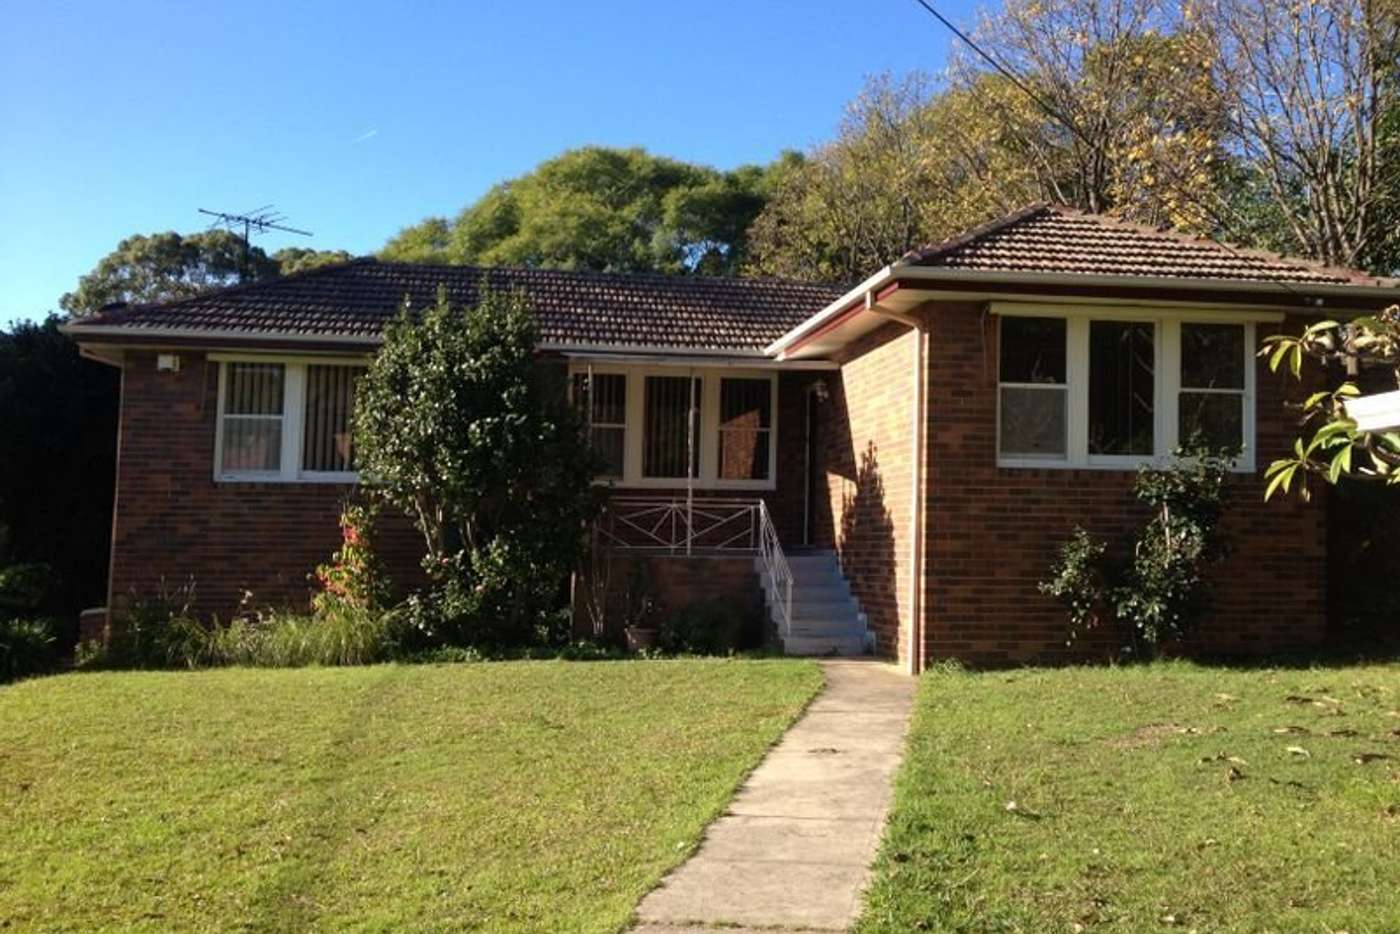 Main view of Homely house listing, 2 Saunders Street, North Parramatta NSW 2151